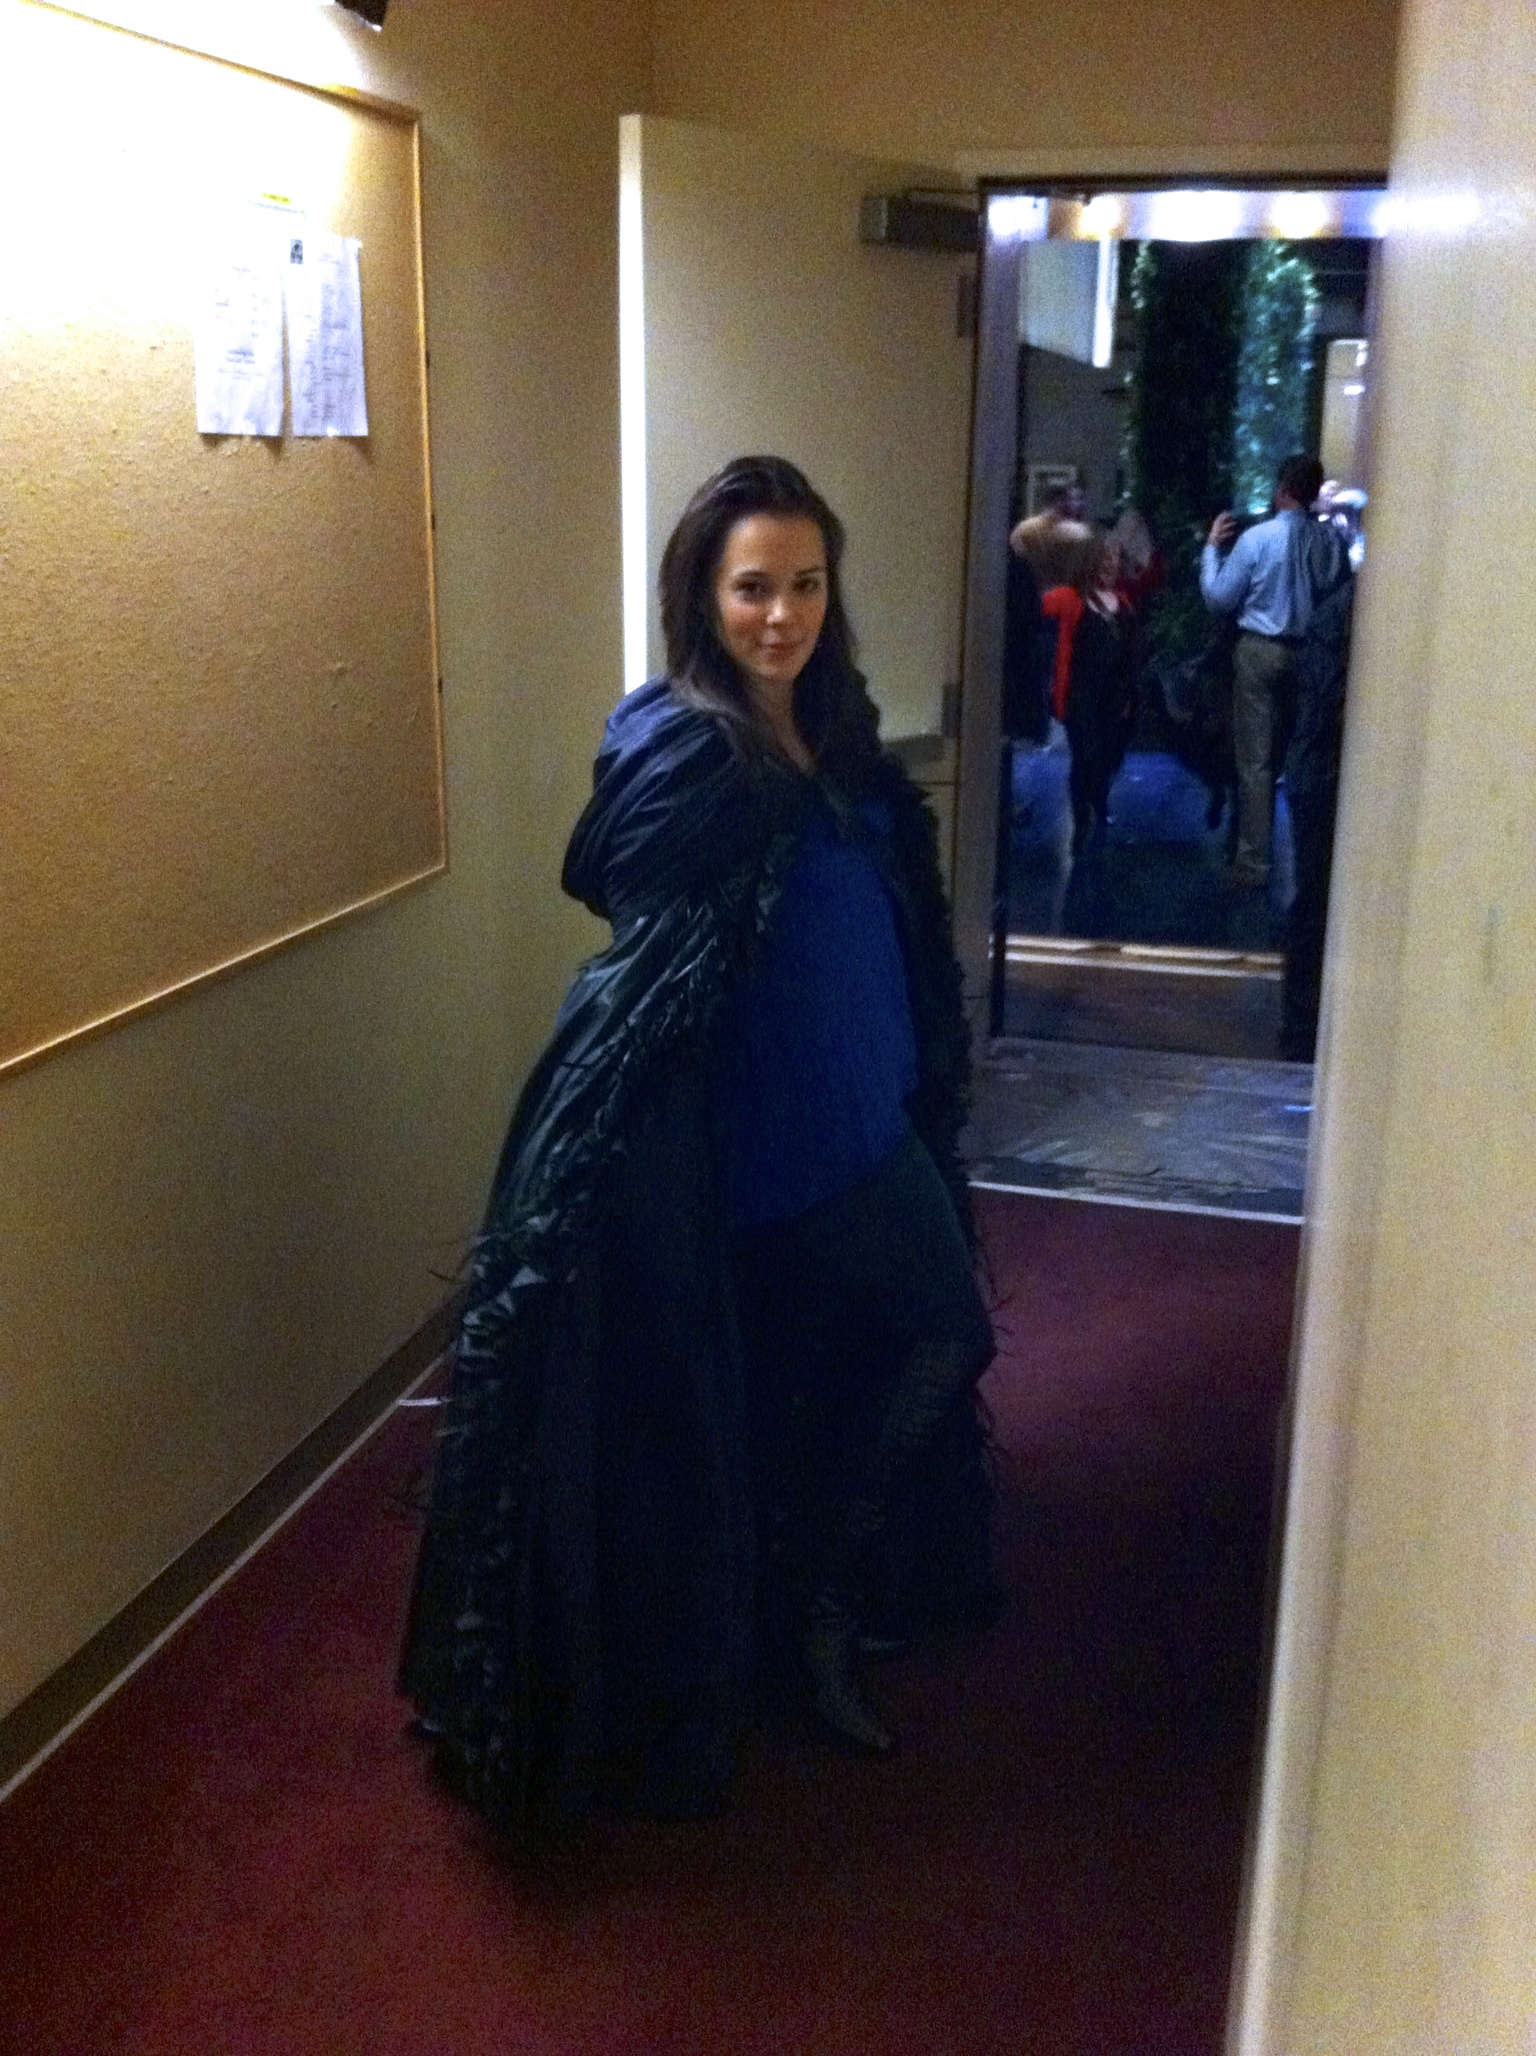 Backstage as Queen of the Night in Philadelphia